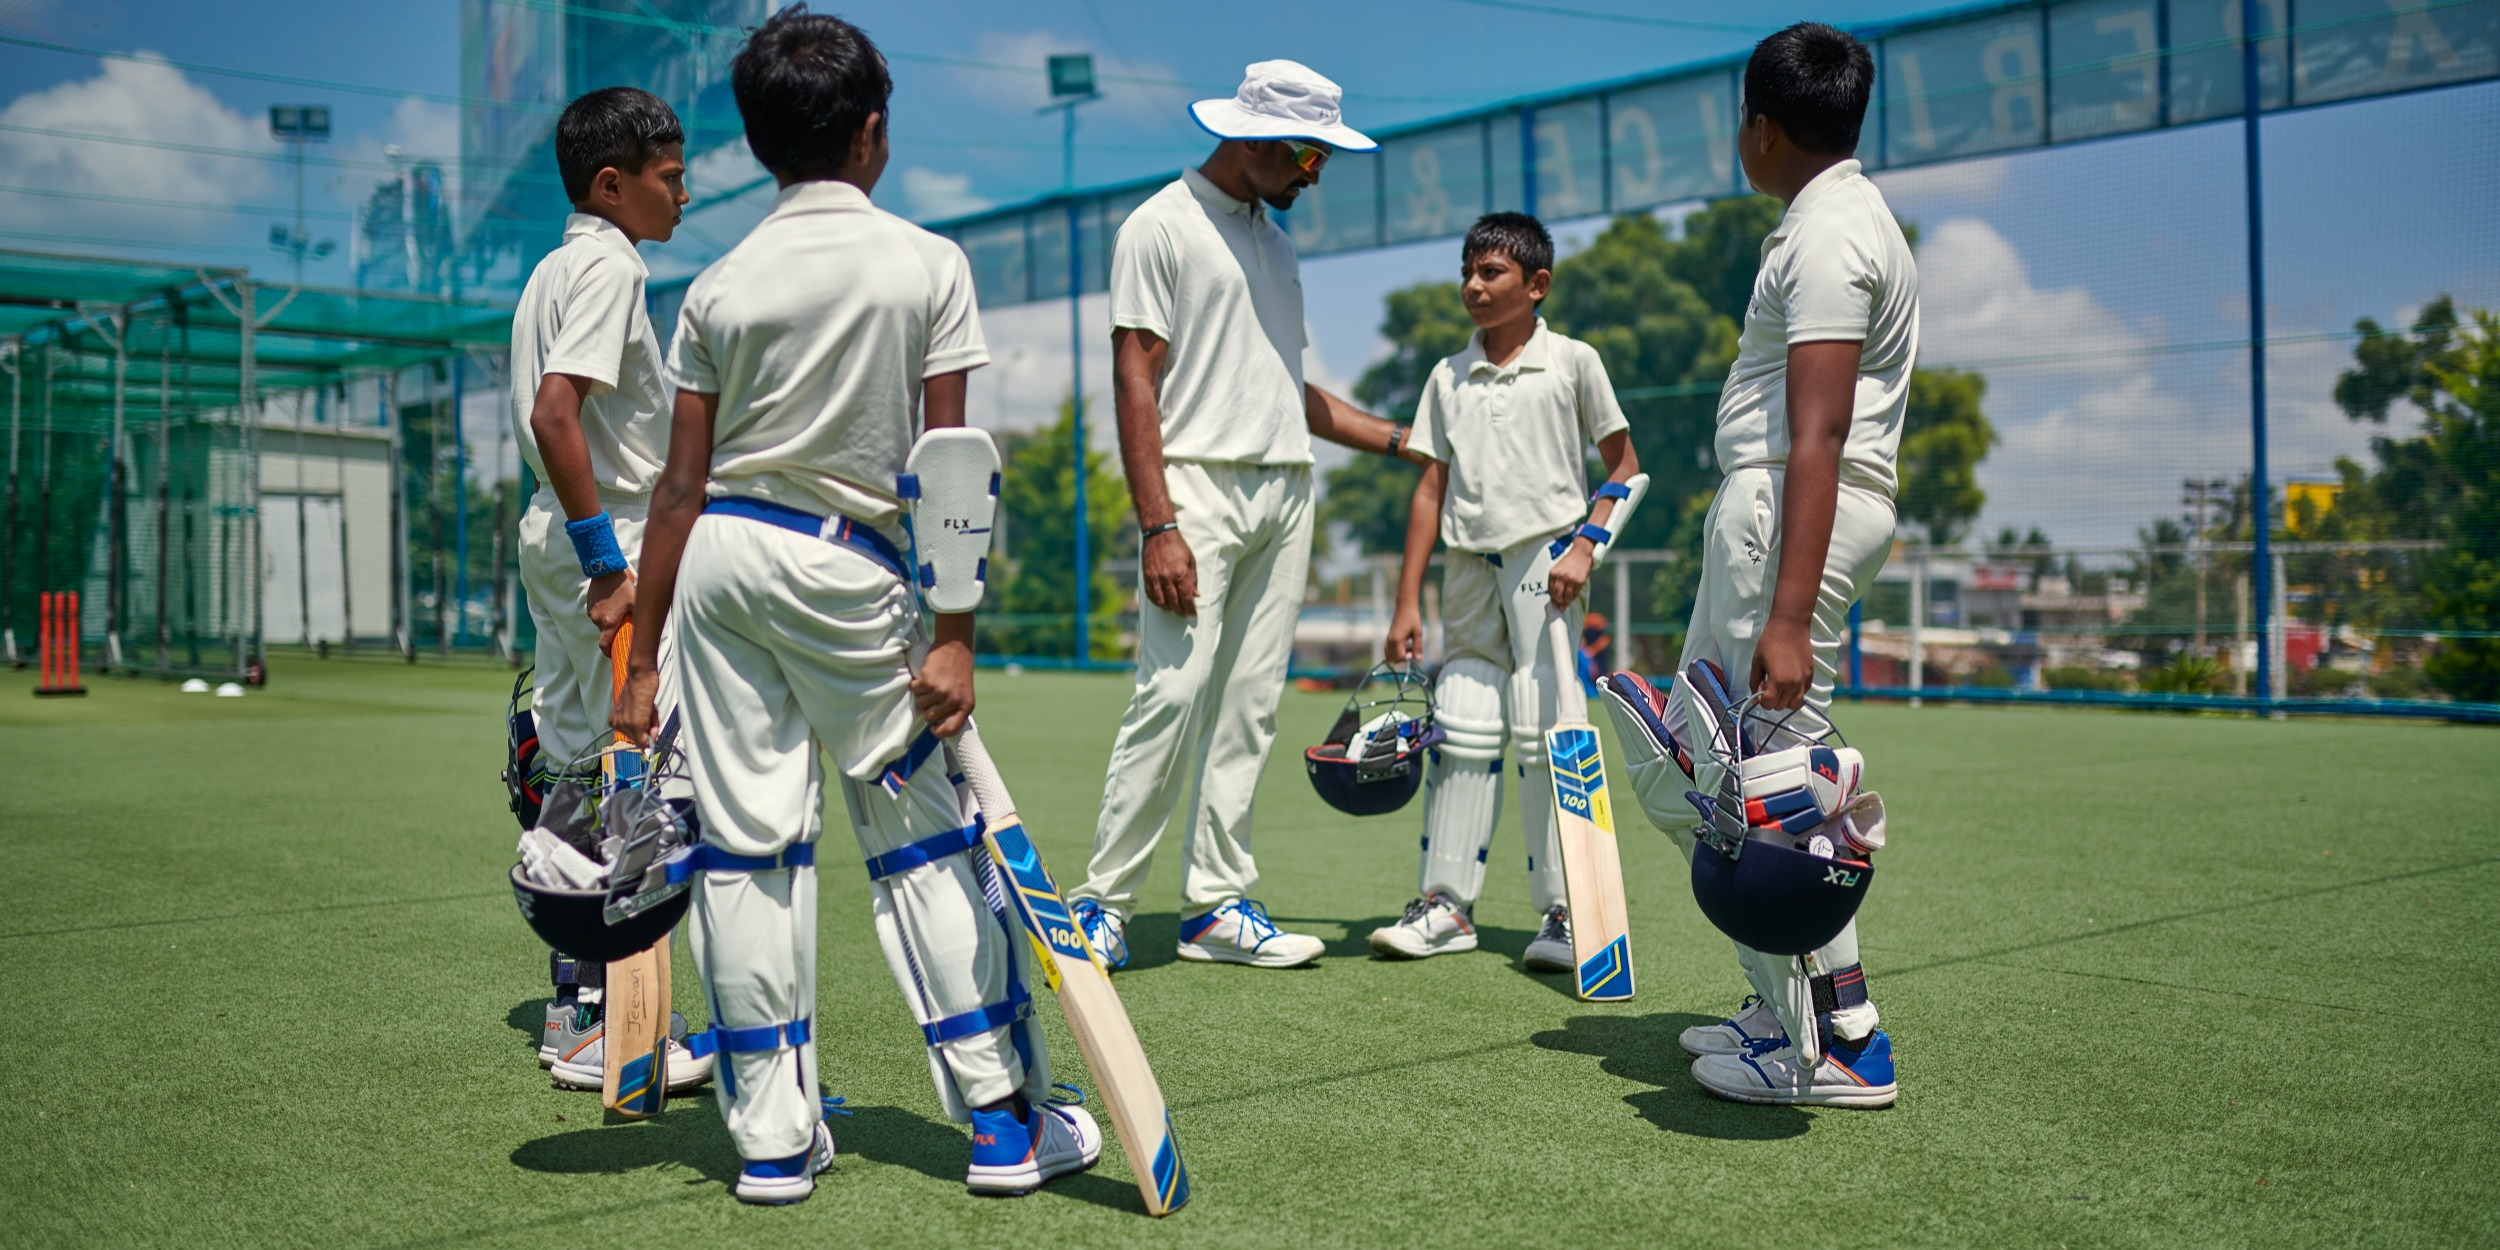 All You Need To Know About Starting To Play Cricket